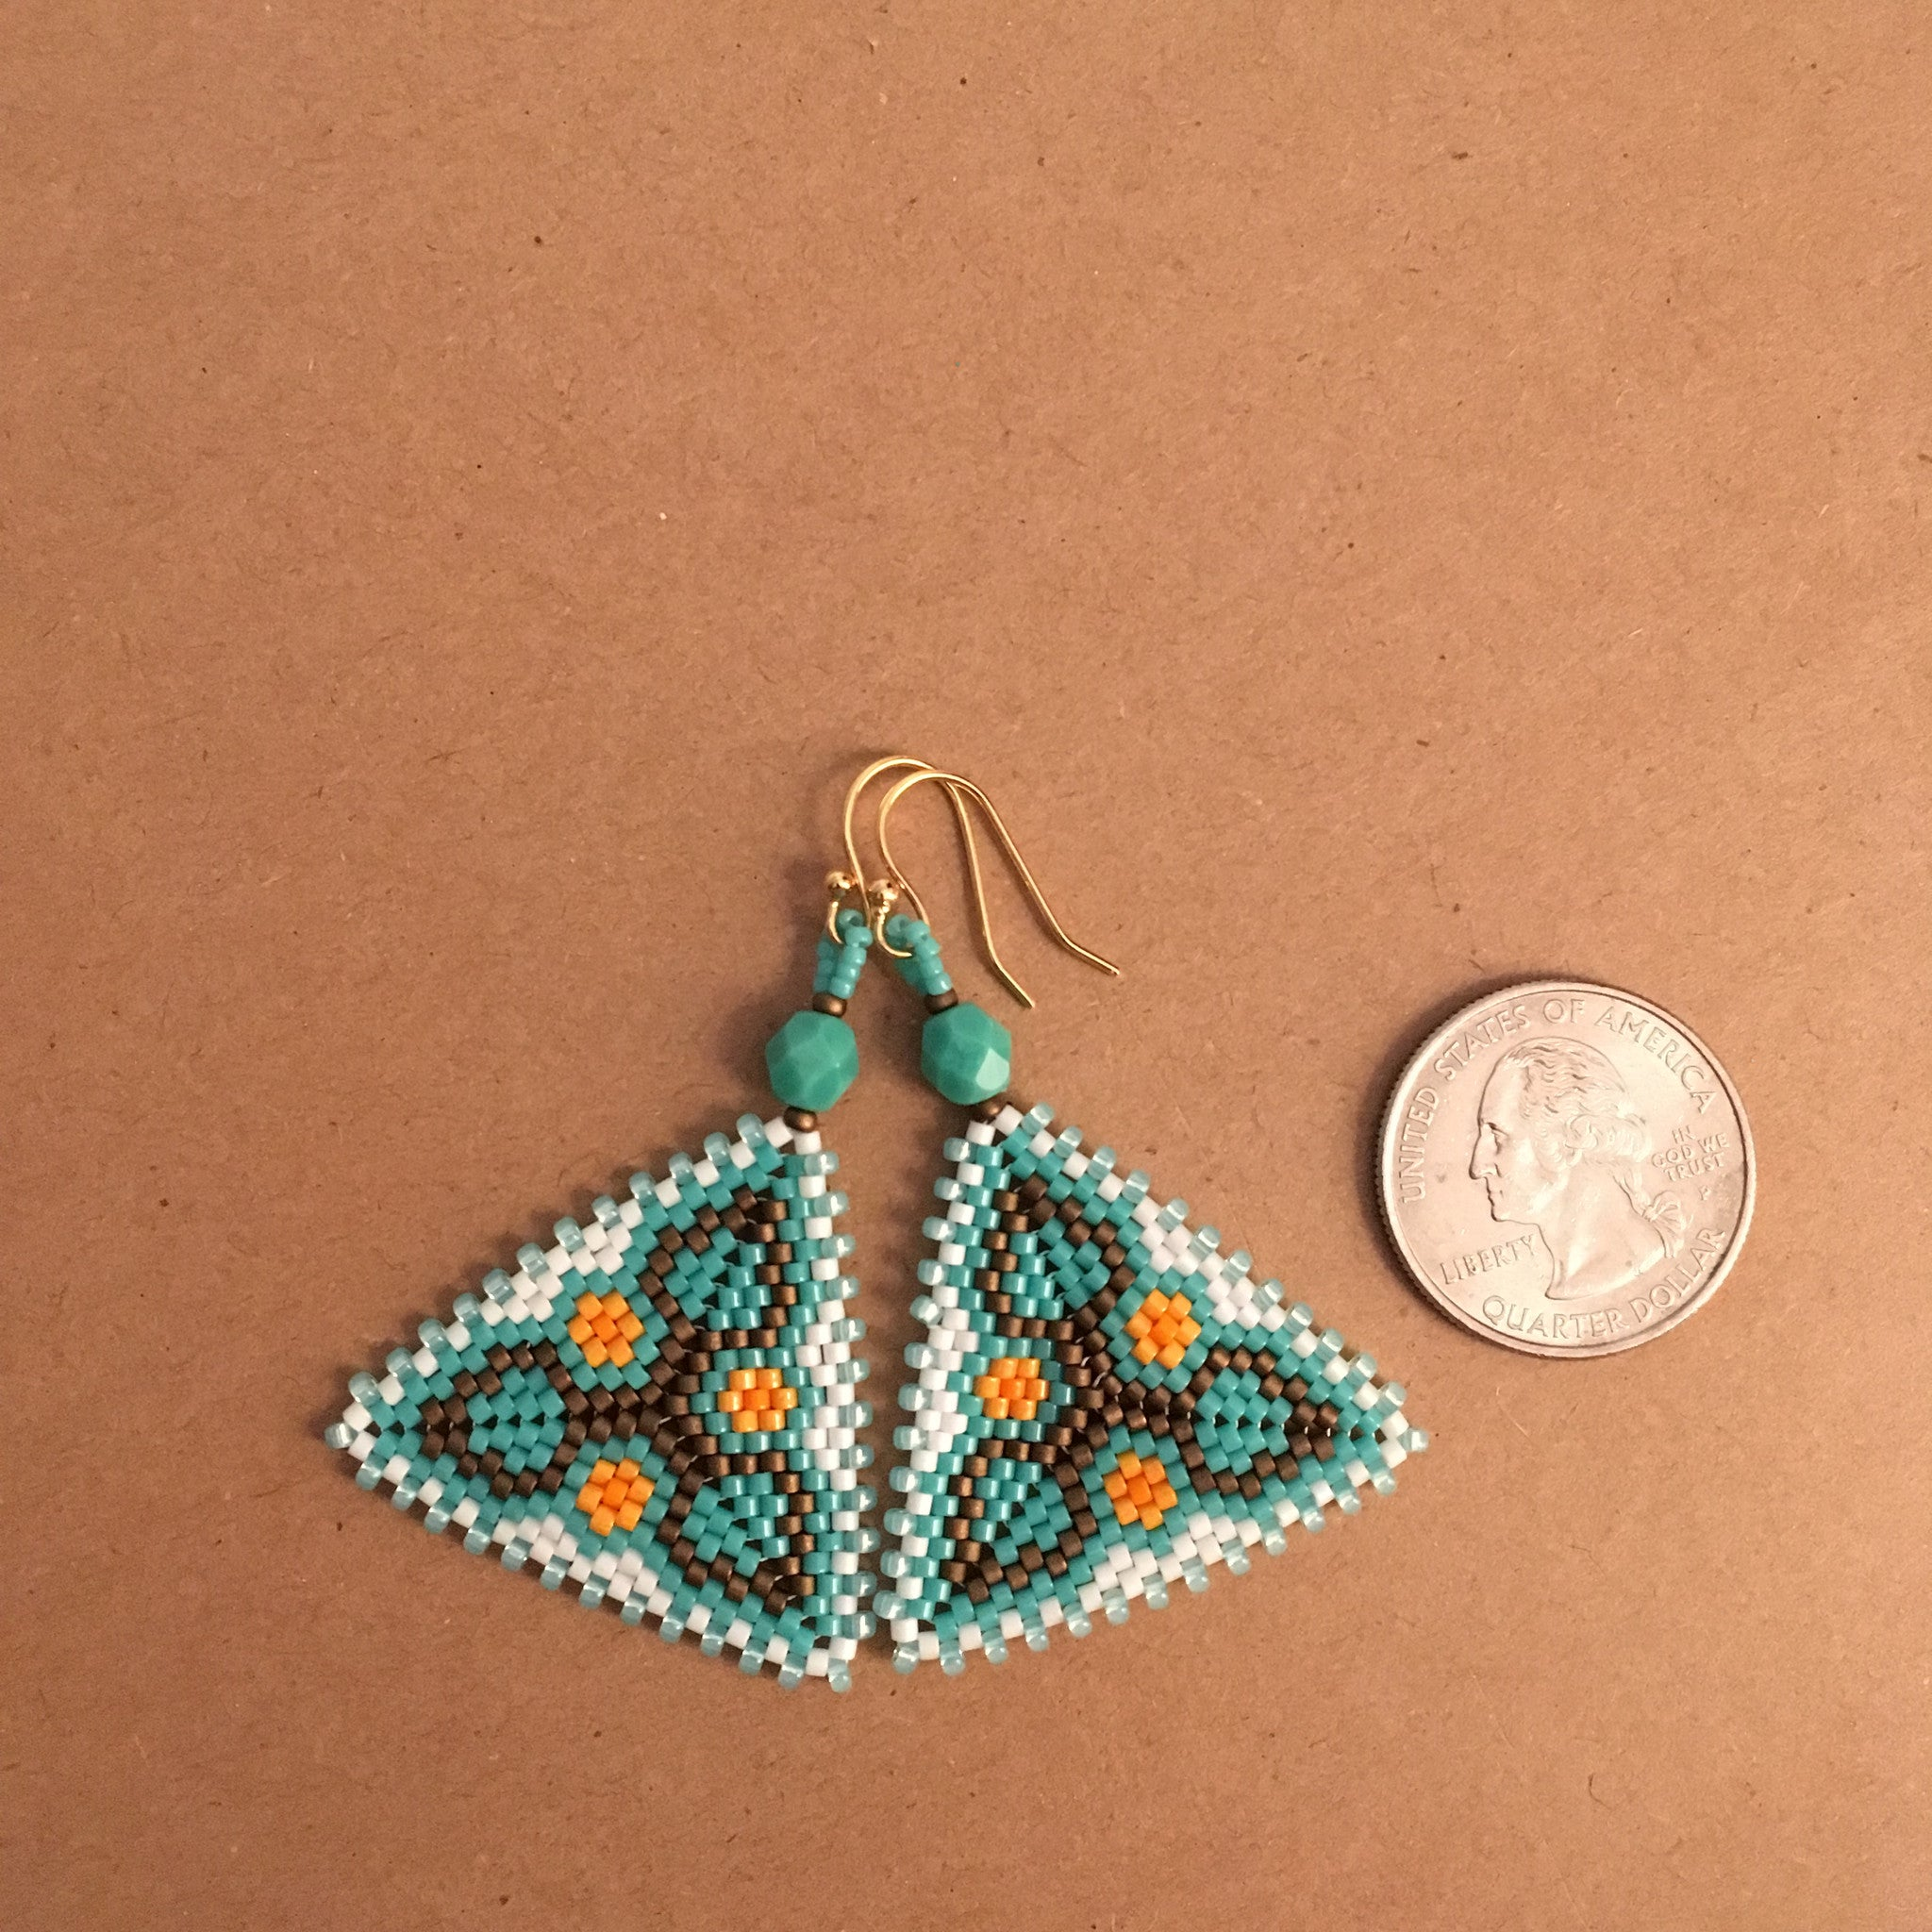 Turquoise Flower and Leaf Earrings in a Peyote Triangle